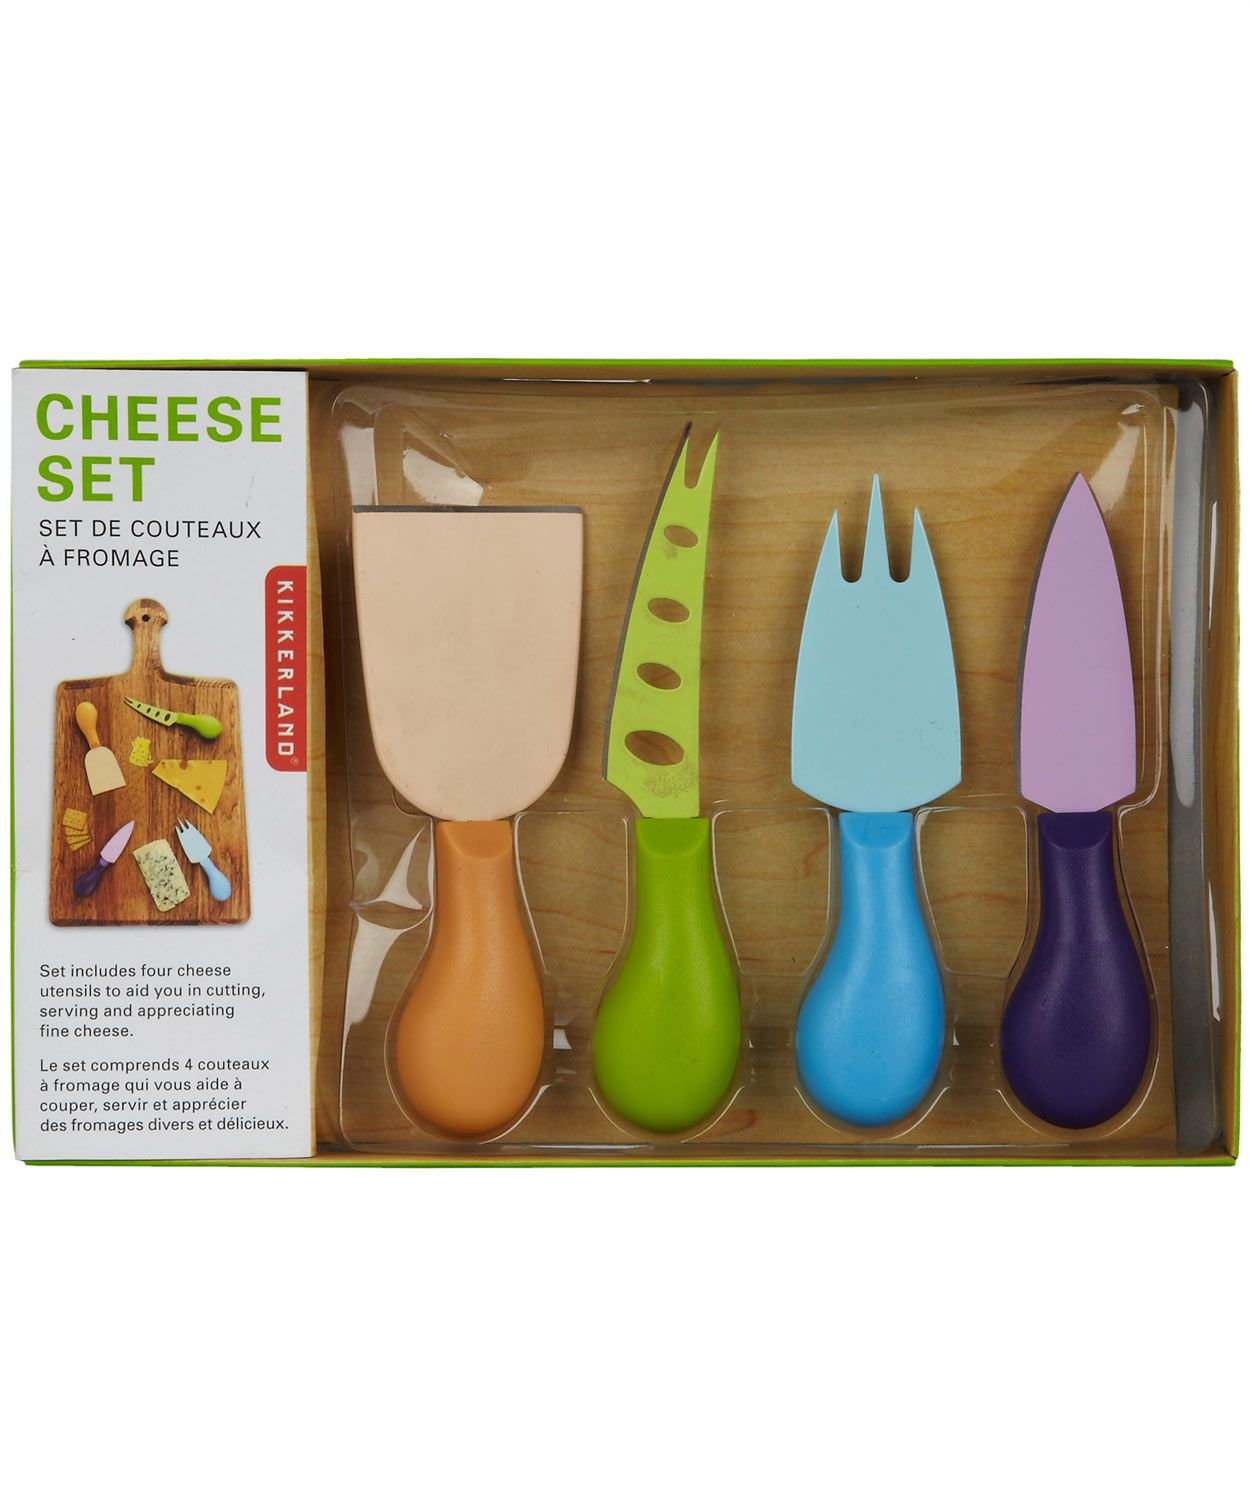 Cheese Knife Set, Kikkerland. Shop more from the Kikkerland collection at Liberty.co.uk